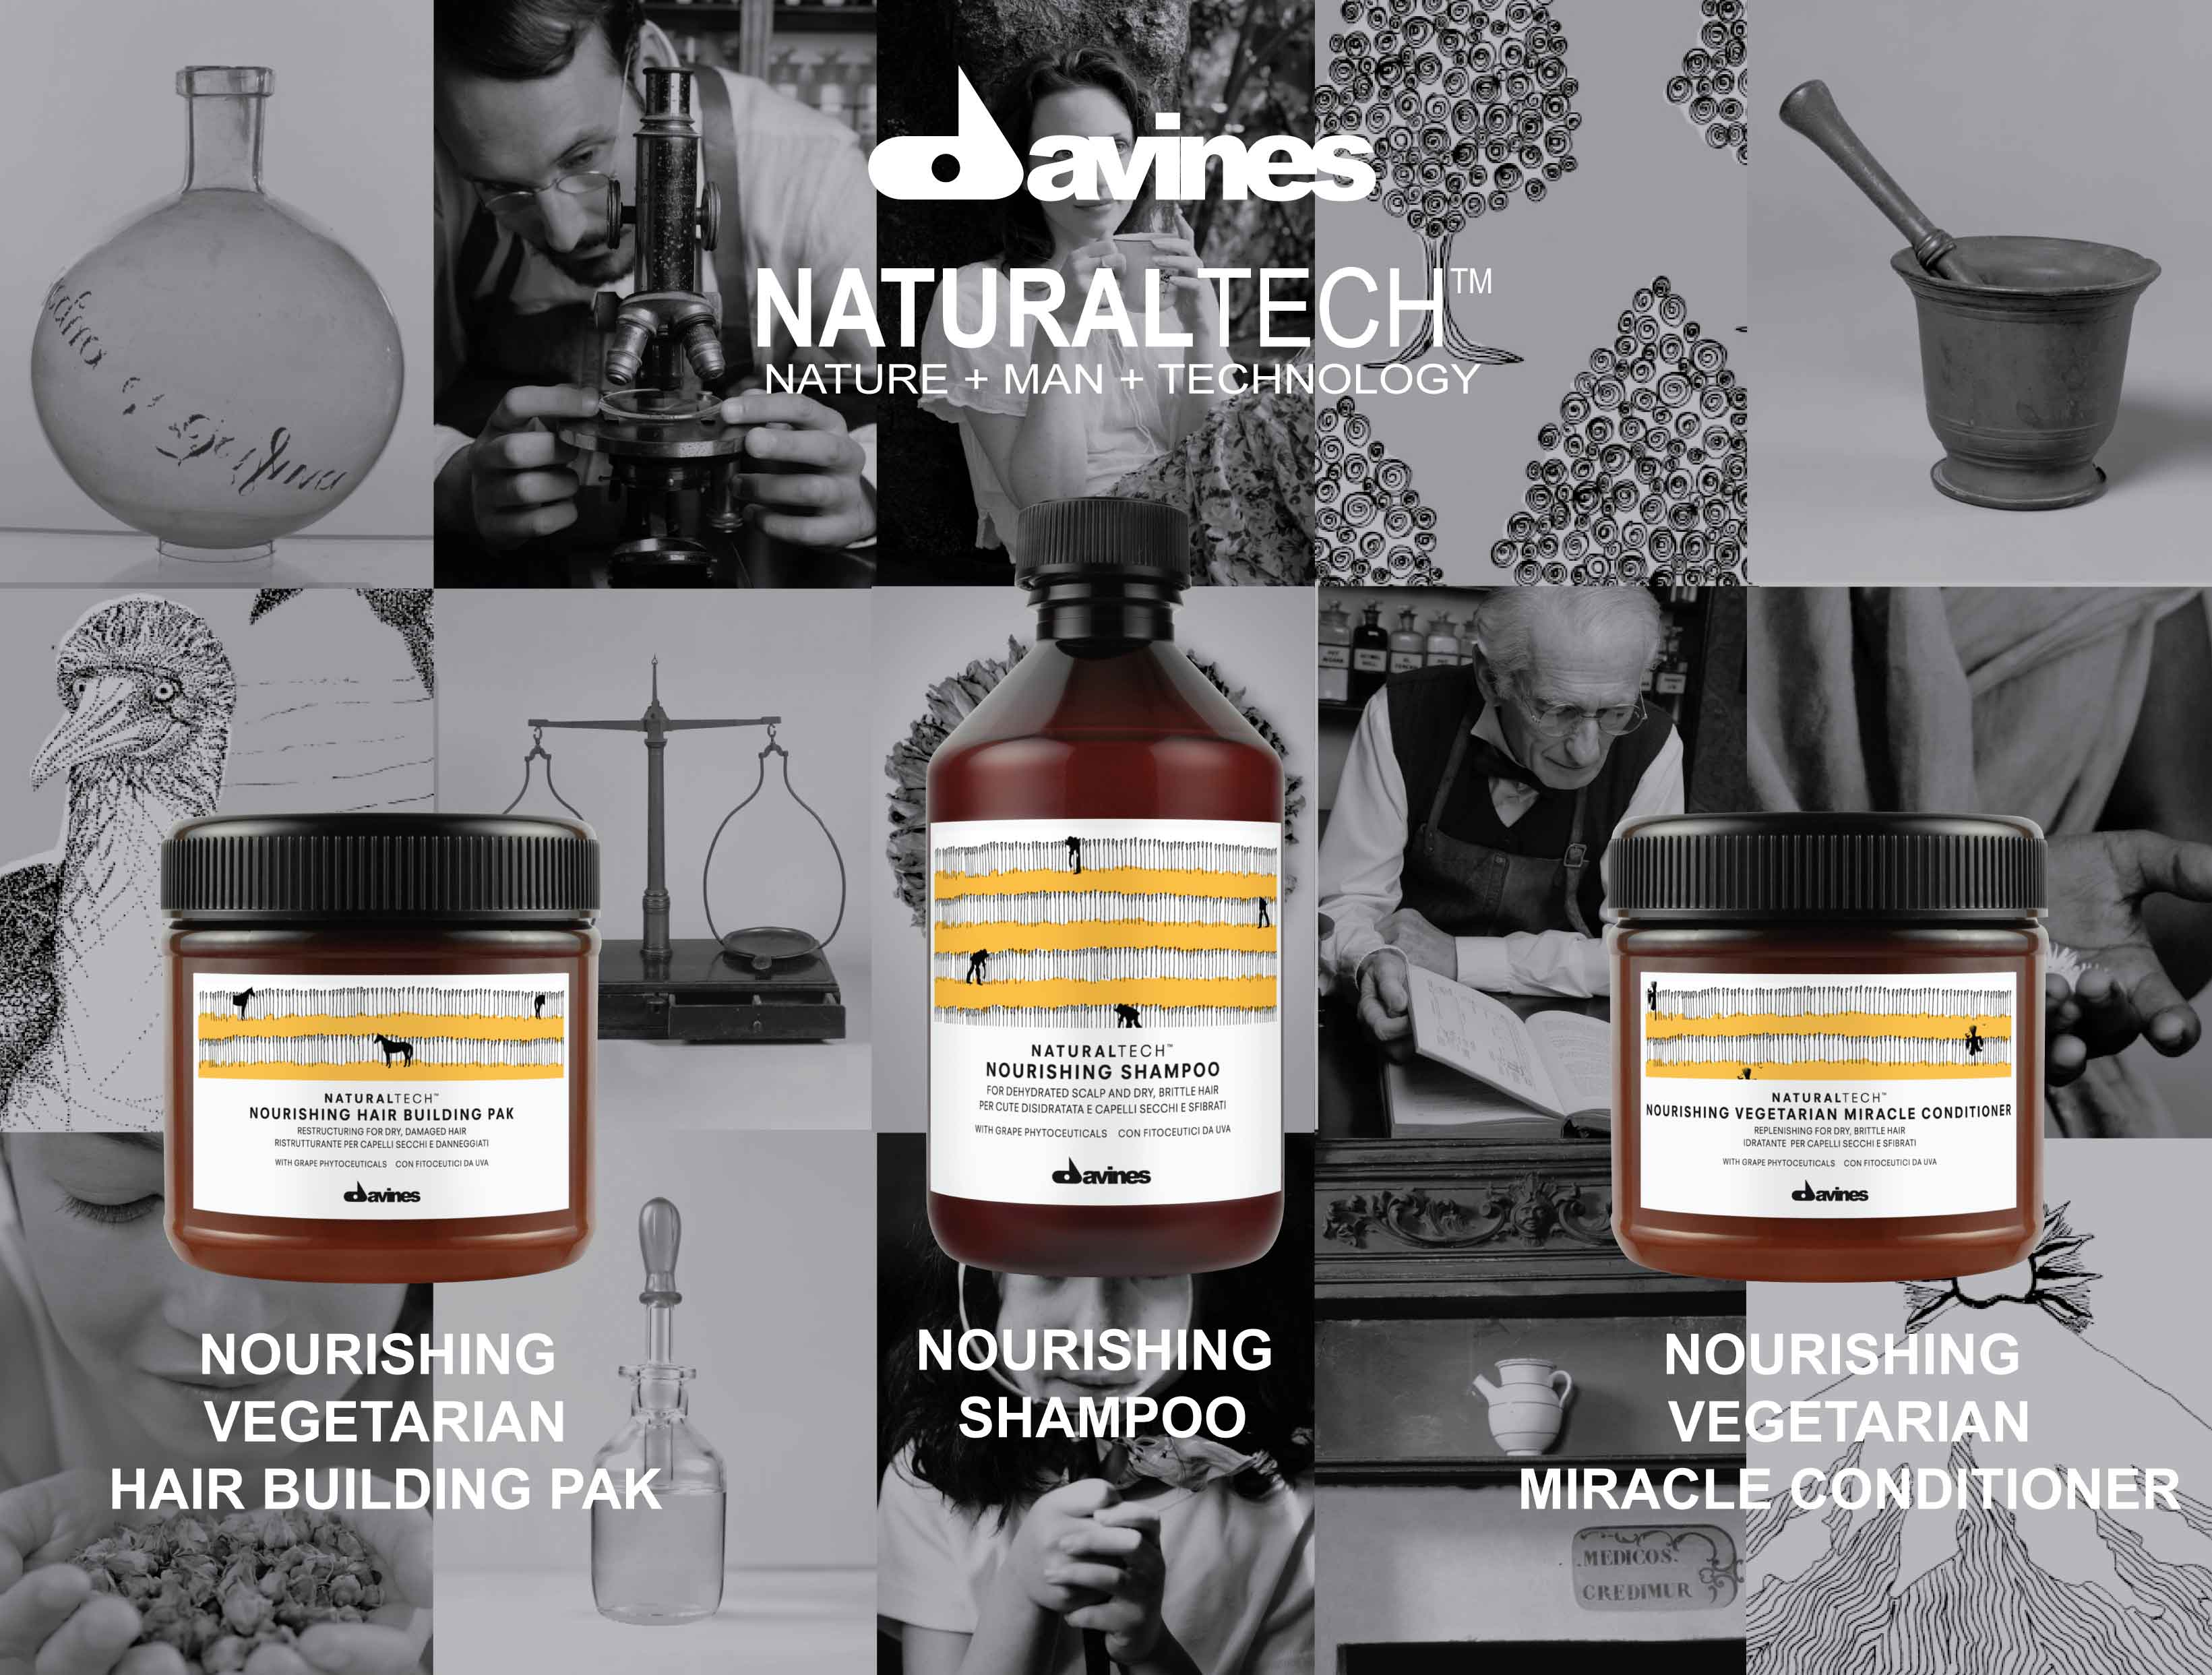 http://institut2d.ru/images/upload/davines-2.jpg